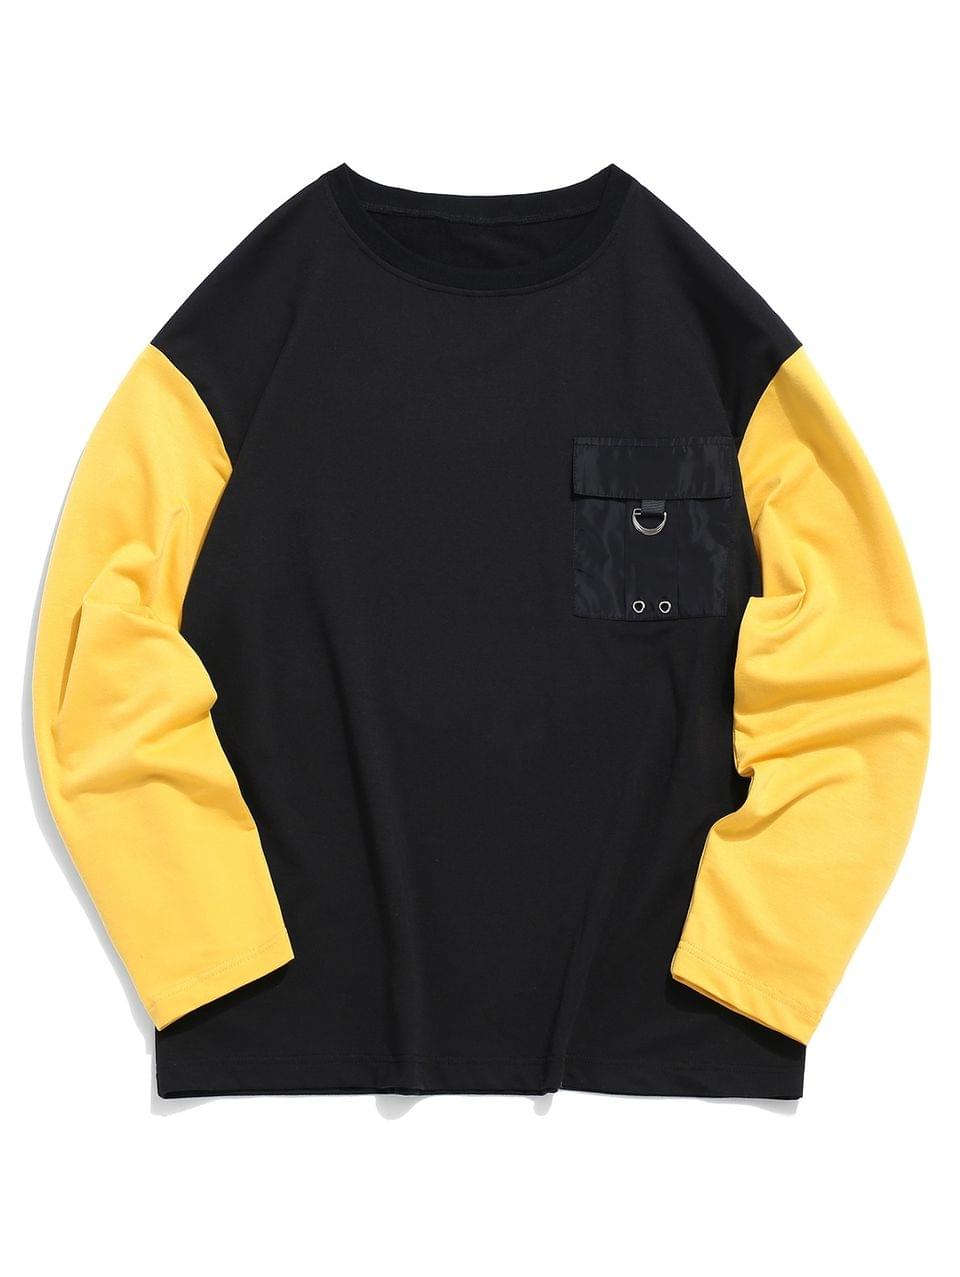 Men's Pocket Decorated Color Spliced Sweatshirt - Black S